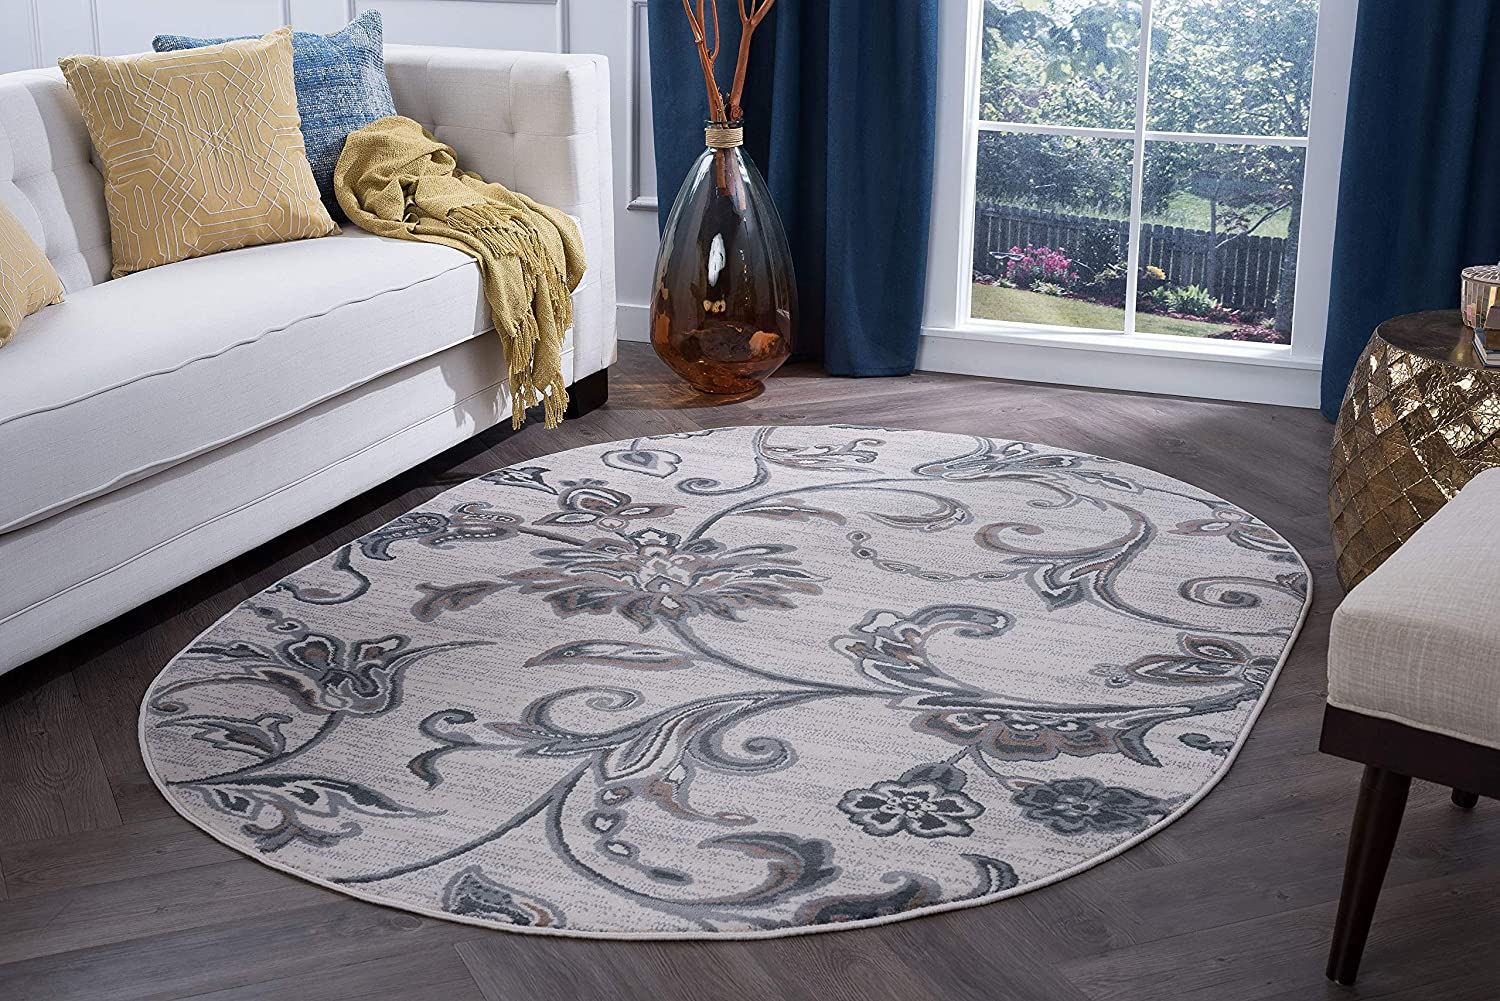 Garland Max 72% OFF Cream free shipping Round Rug for Living B Area Rugs Modern Room -